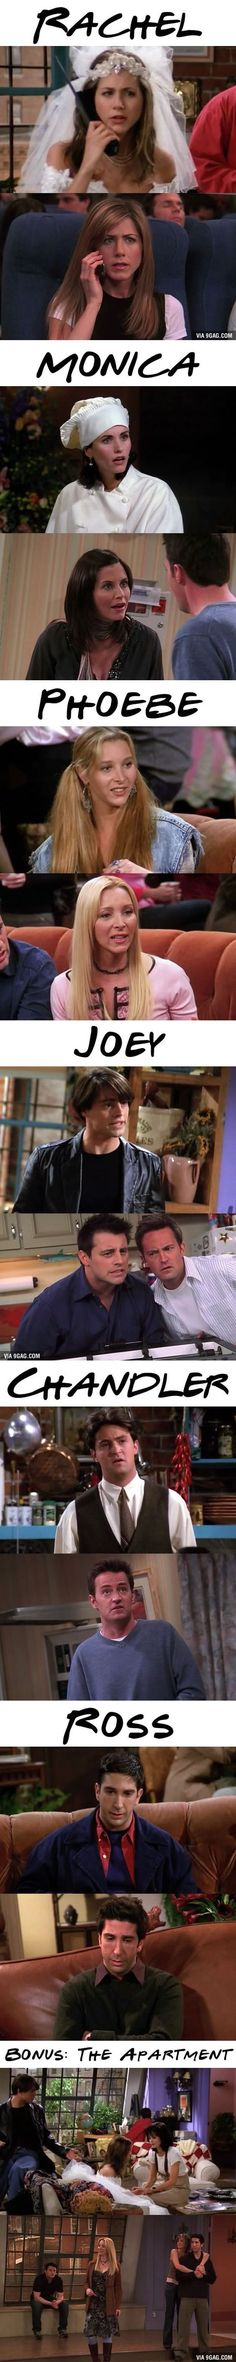 """The Cast Of """"Friends"""" On The First Episode Vs. The Last Episode Friends is the Best Show Ever. Friends made us laugh, it made us cry. It thought all of us so much about friendship and friends. Friends Tv Show, Friends 1994, The Cast Of Friends, Serie Friends, Friends Moments, I Love My Friends, Friends Forever, Funny Friends, Friends Season 10"""